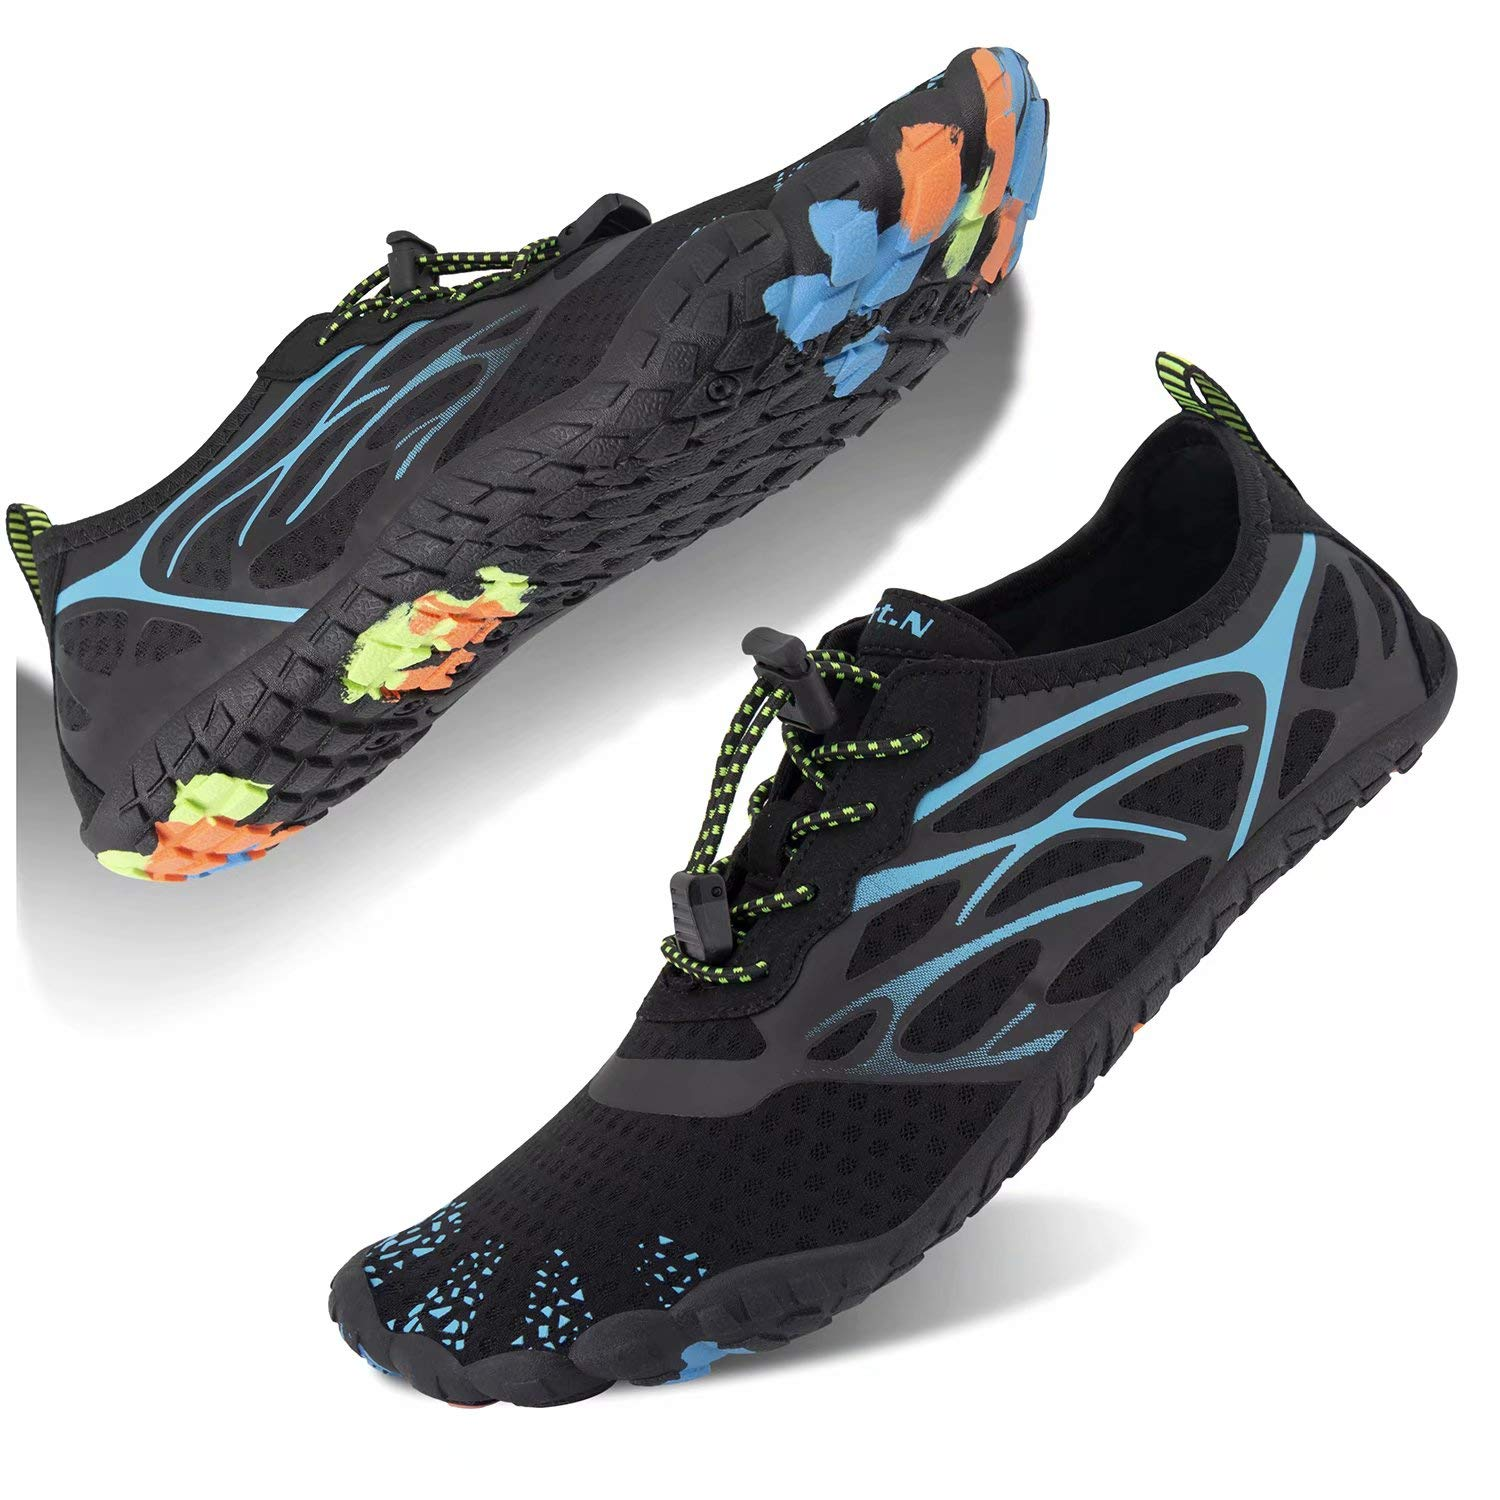 Water-Shoes-Mens-Womens Quick-Dry Barefoot-Swim Diving Shoes-Aqua-Socks for Sports Climbing Beach Surf